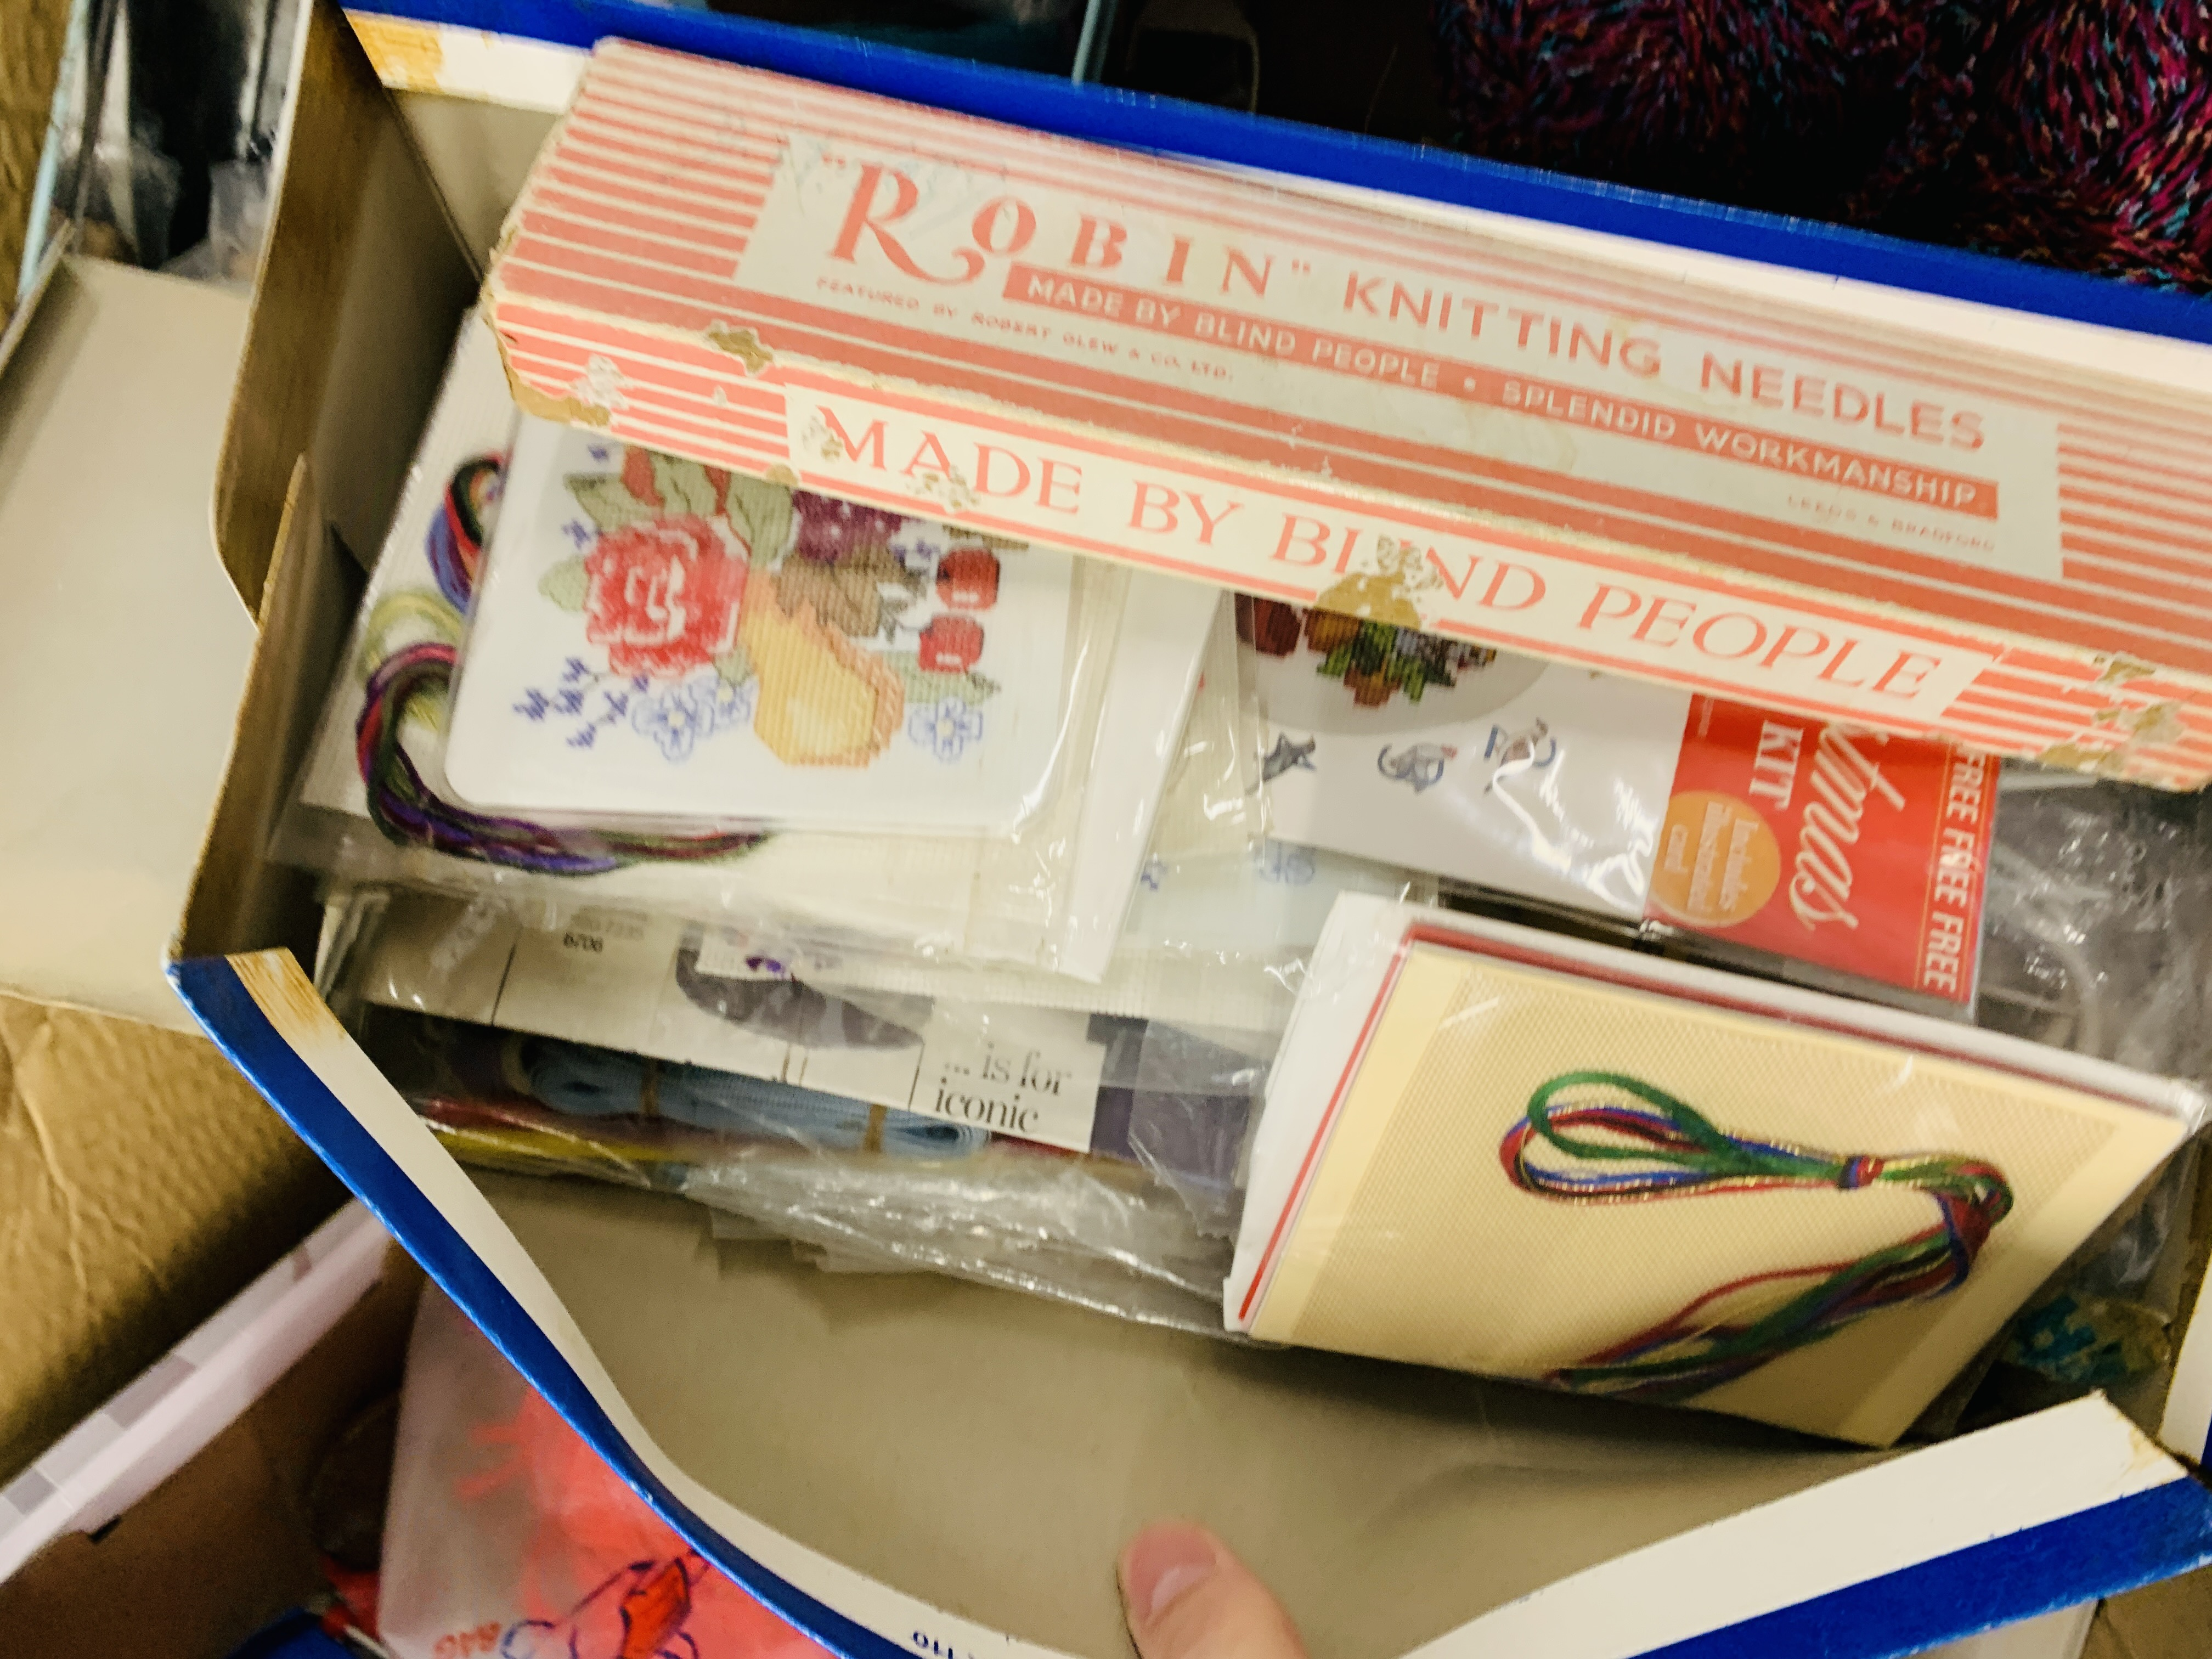 JANOME 110 SEWING MACHINE + VARIOUS KNITTING AND SEWING ACCESSORIES - SOLD AS SEEN - Image 8 of 12